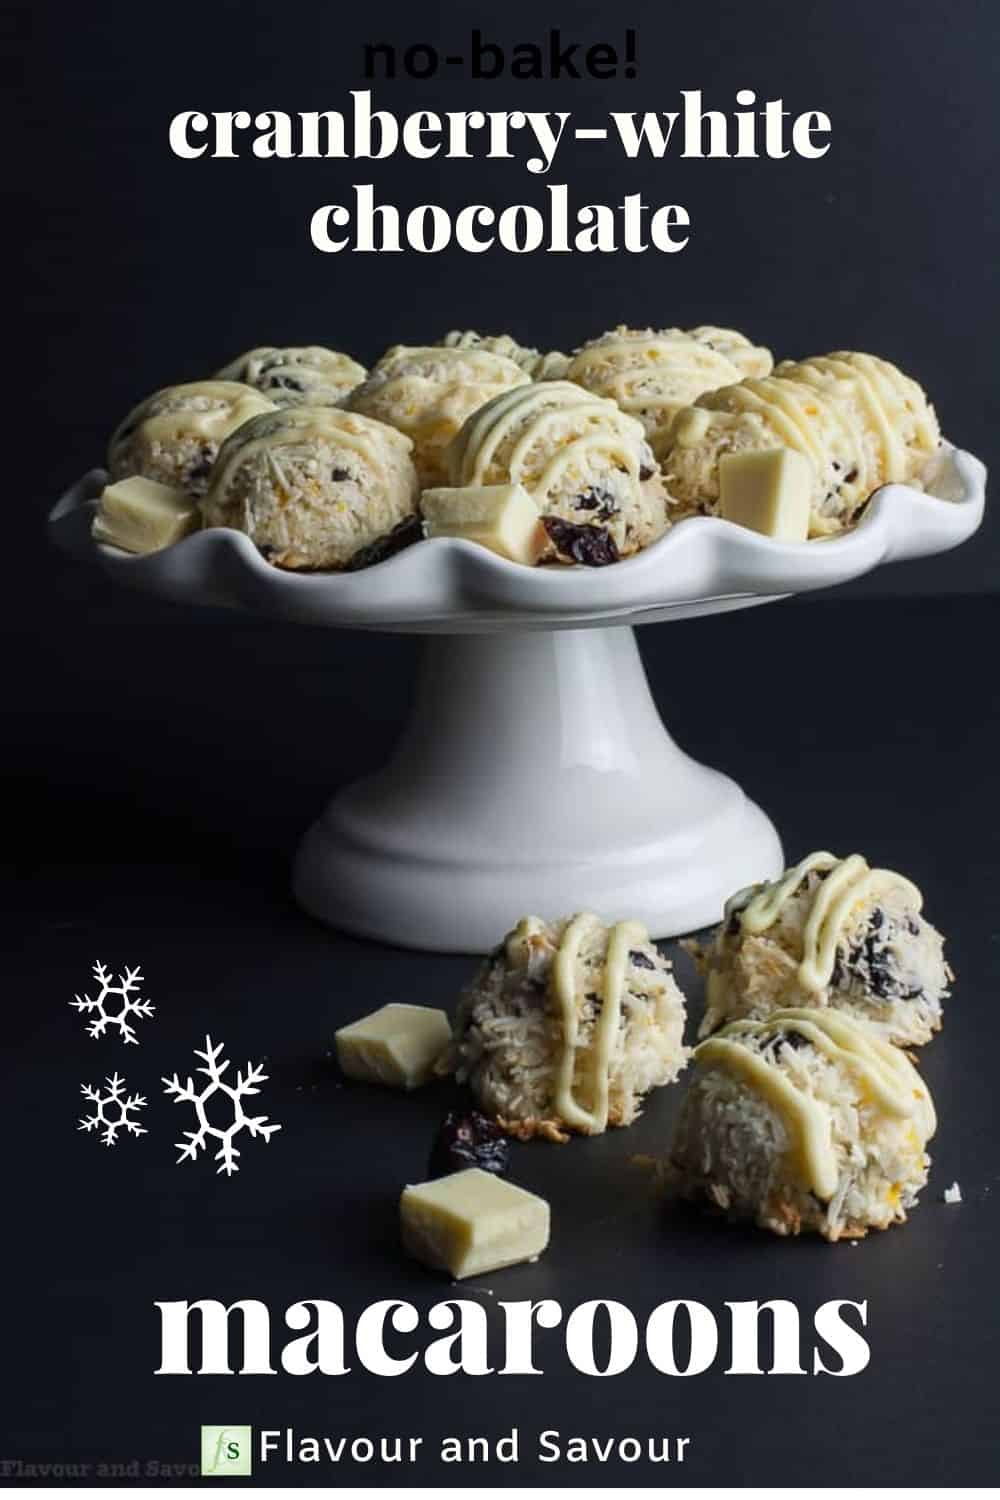 Text and image for Cranberry White Chocolate macaroons